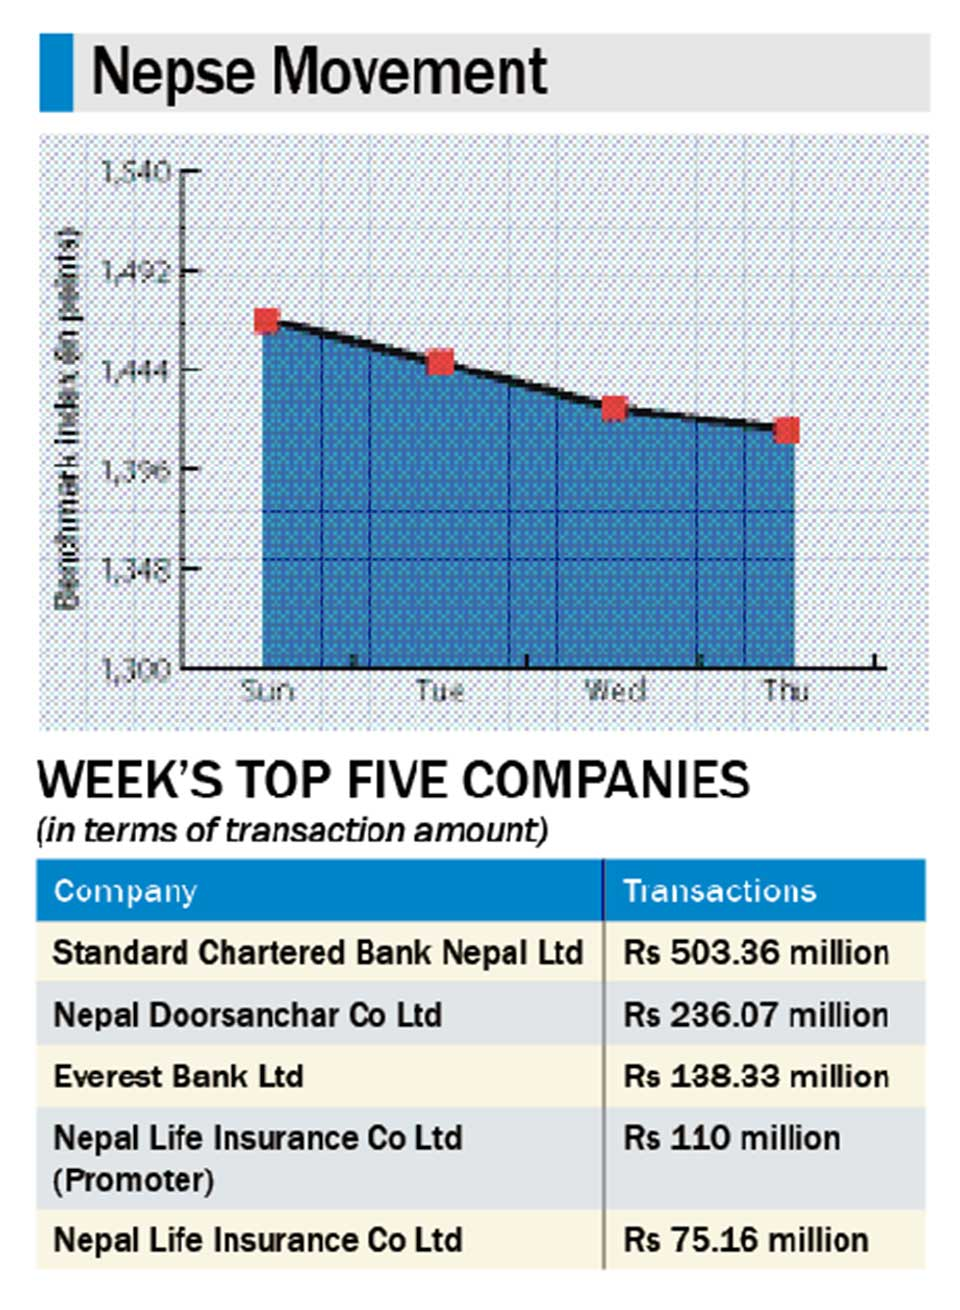 Nepse sheds 53 points in a week